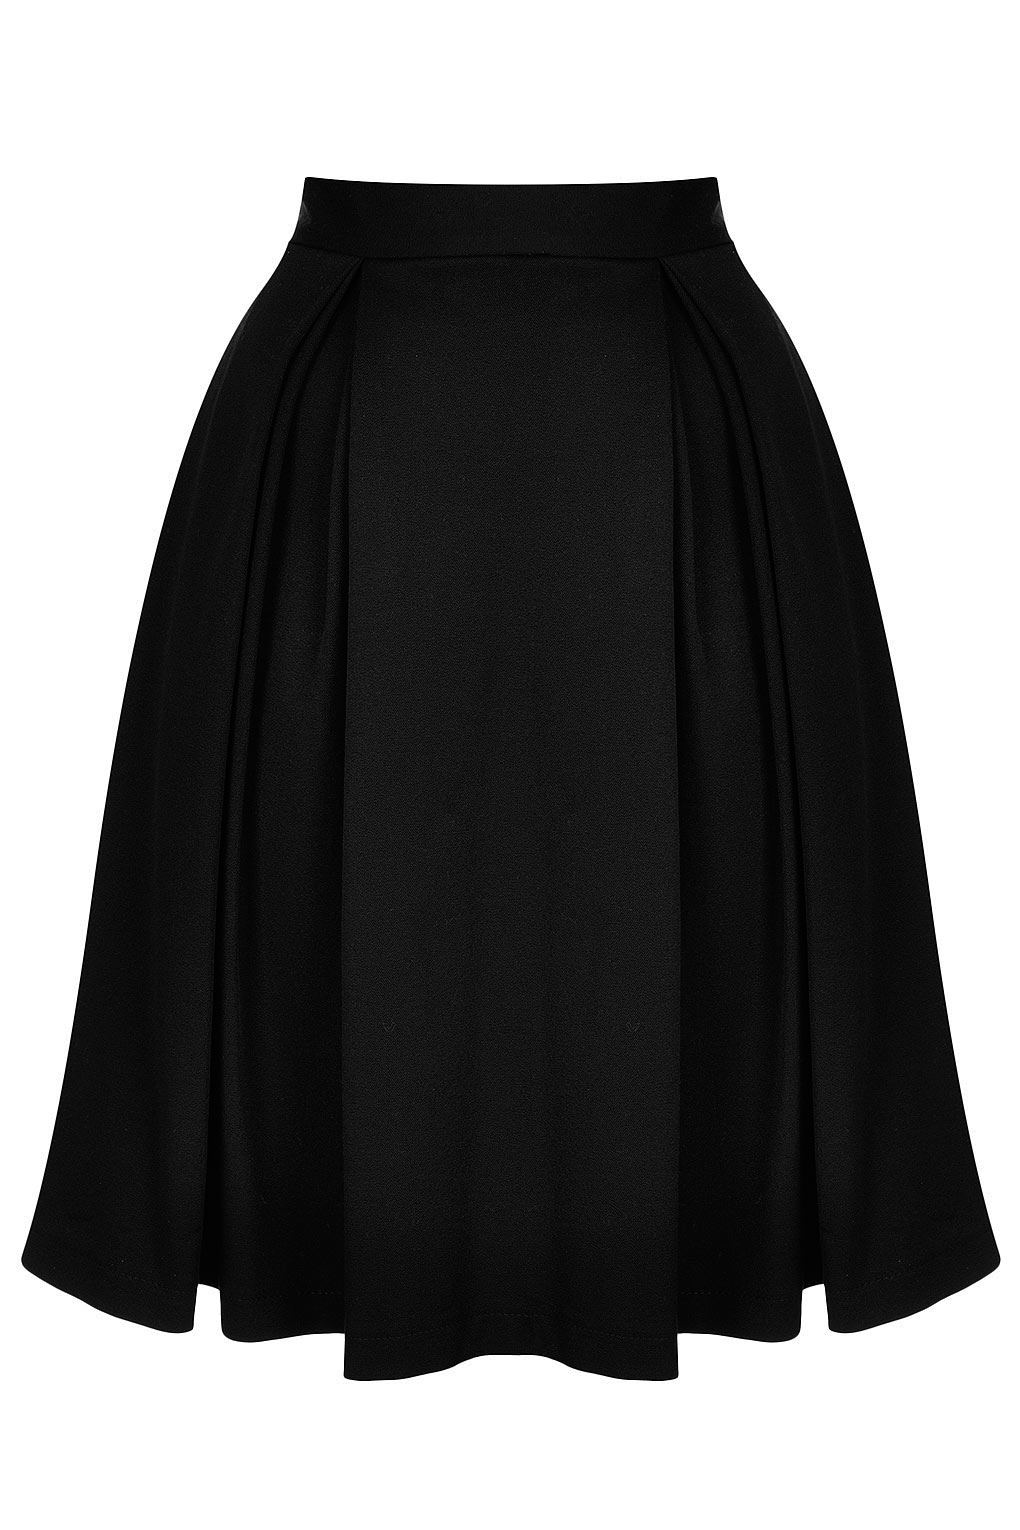 Topshop Knee Length Pleat Skirt in Black | Lyst